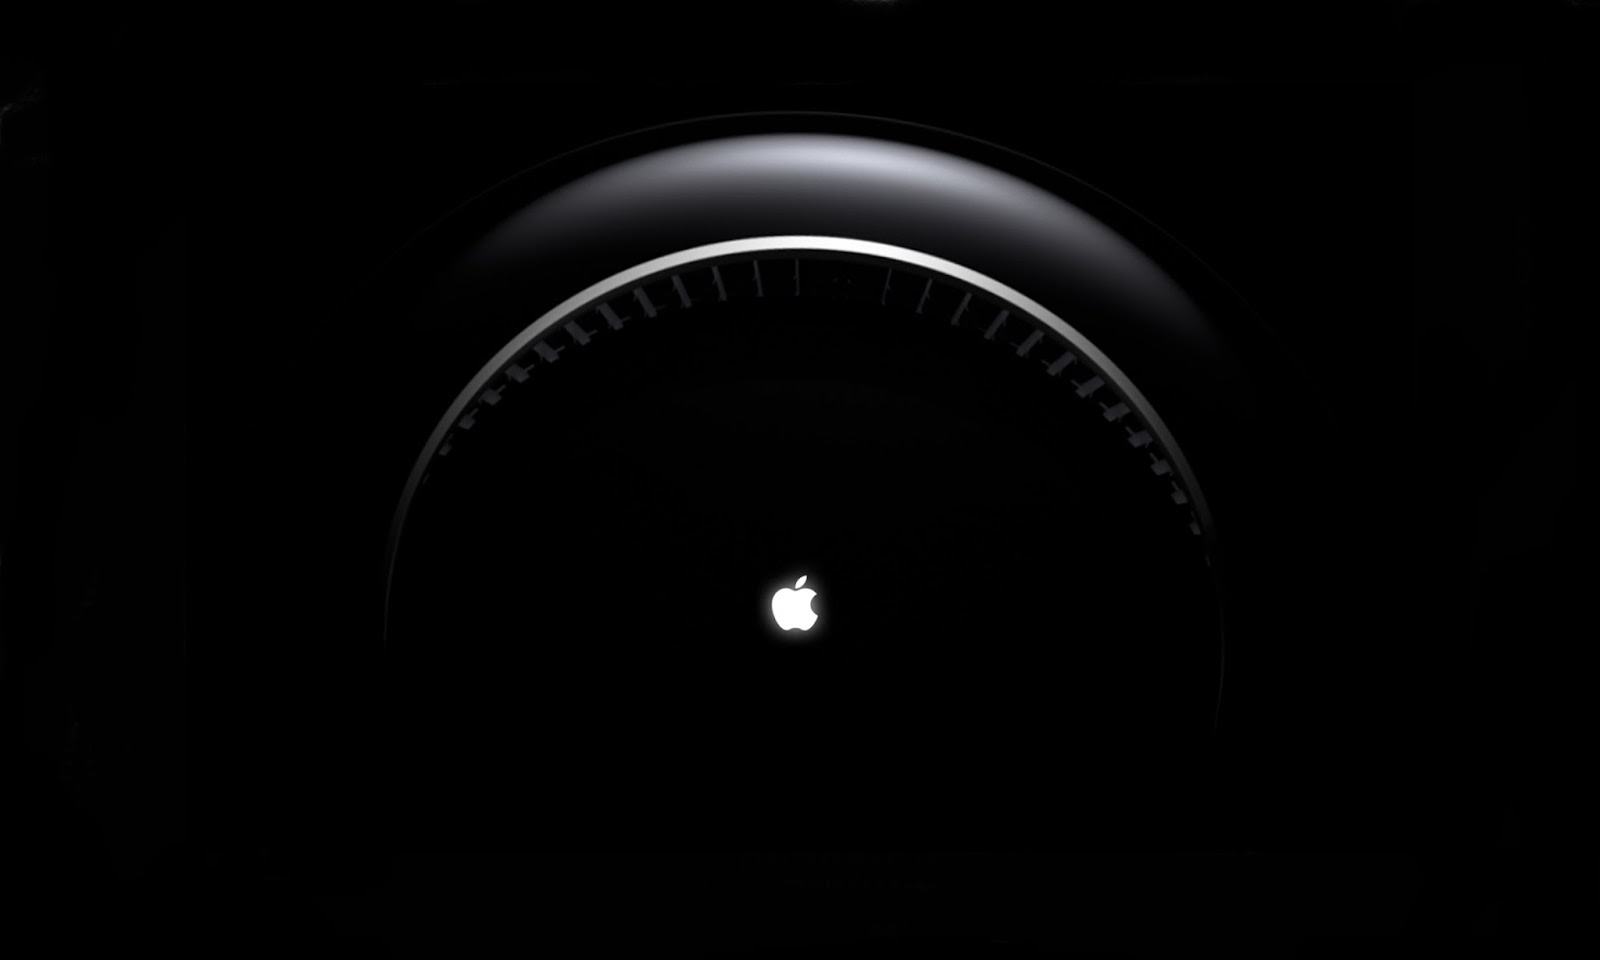 Apple Mac Pro 2013 HD Wallpapers HD Wallpapers High Definition 1600x960